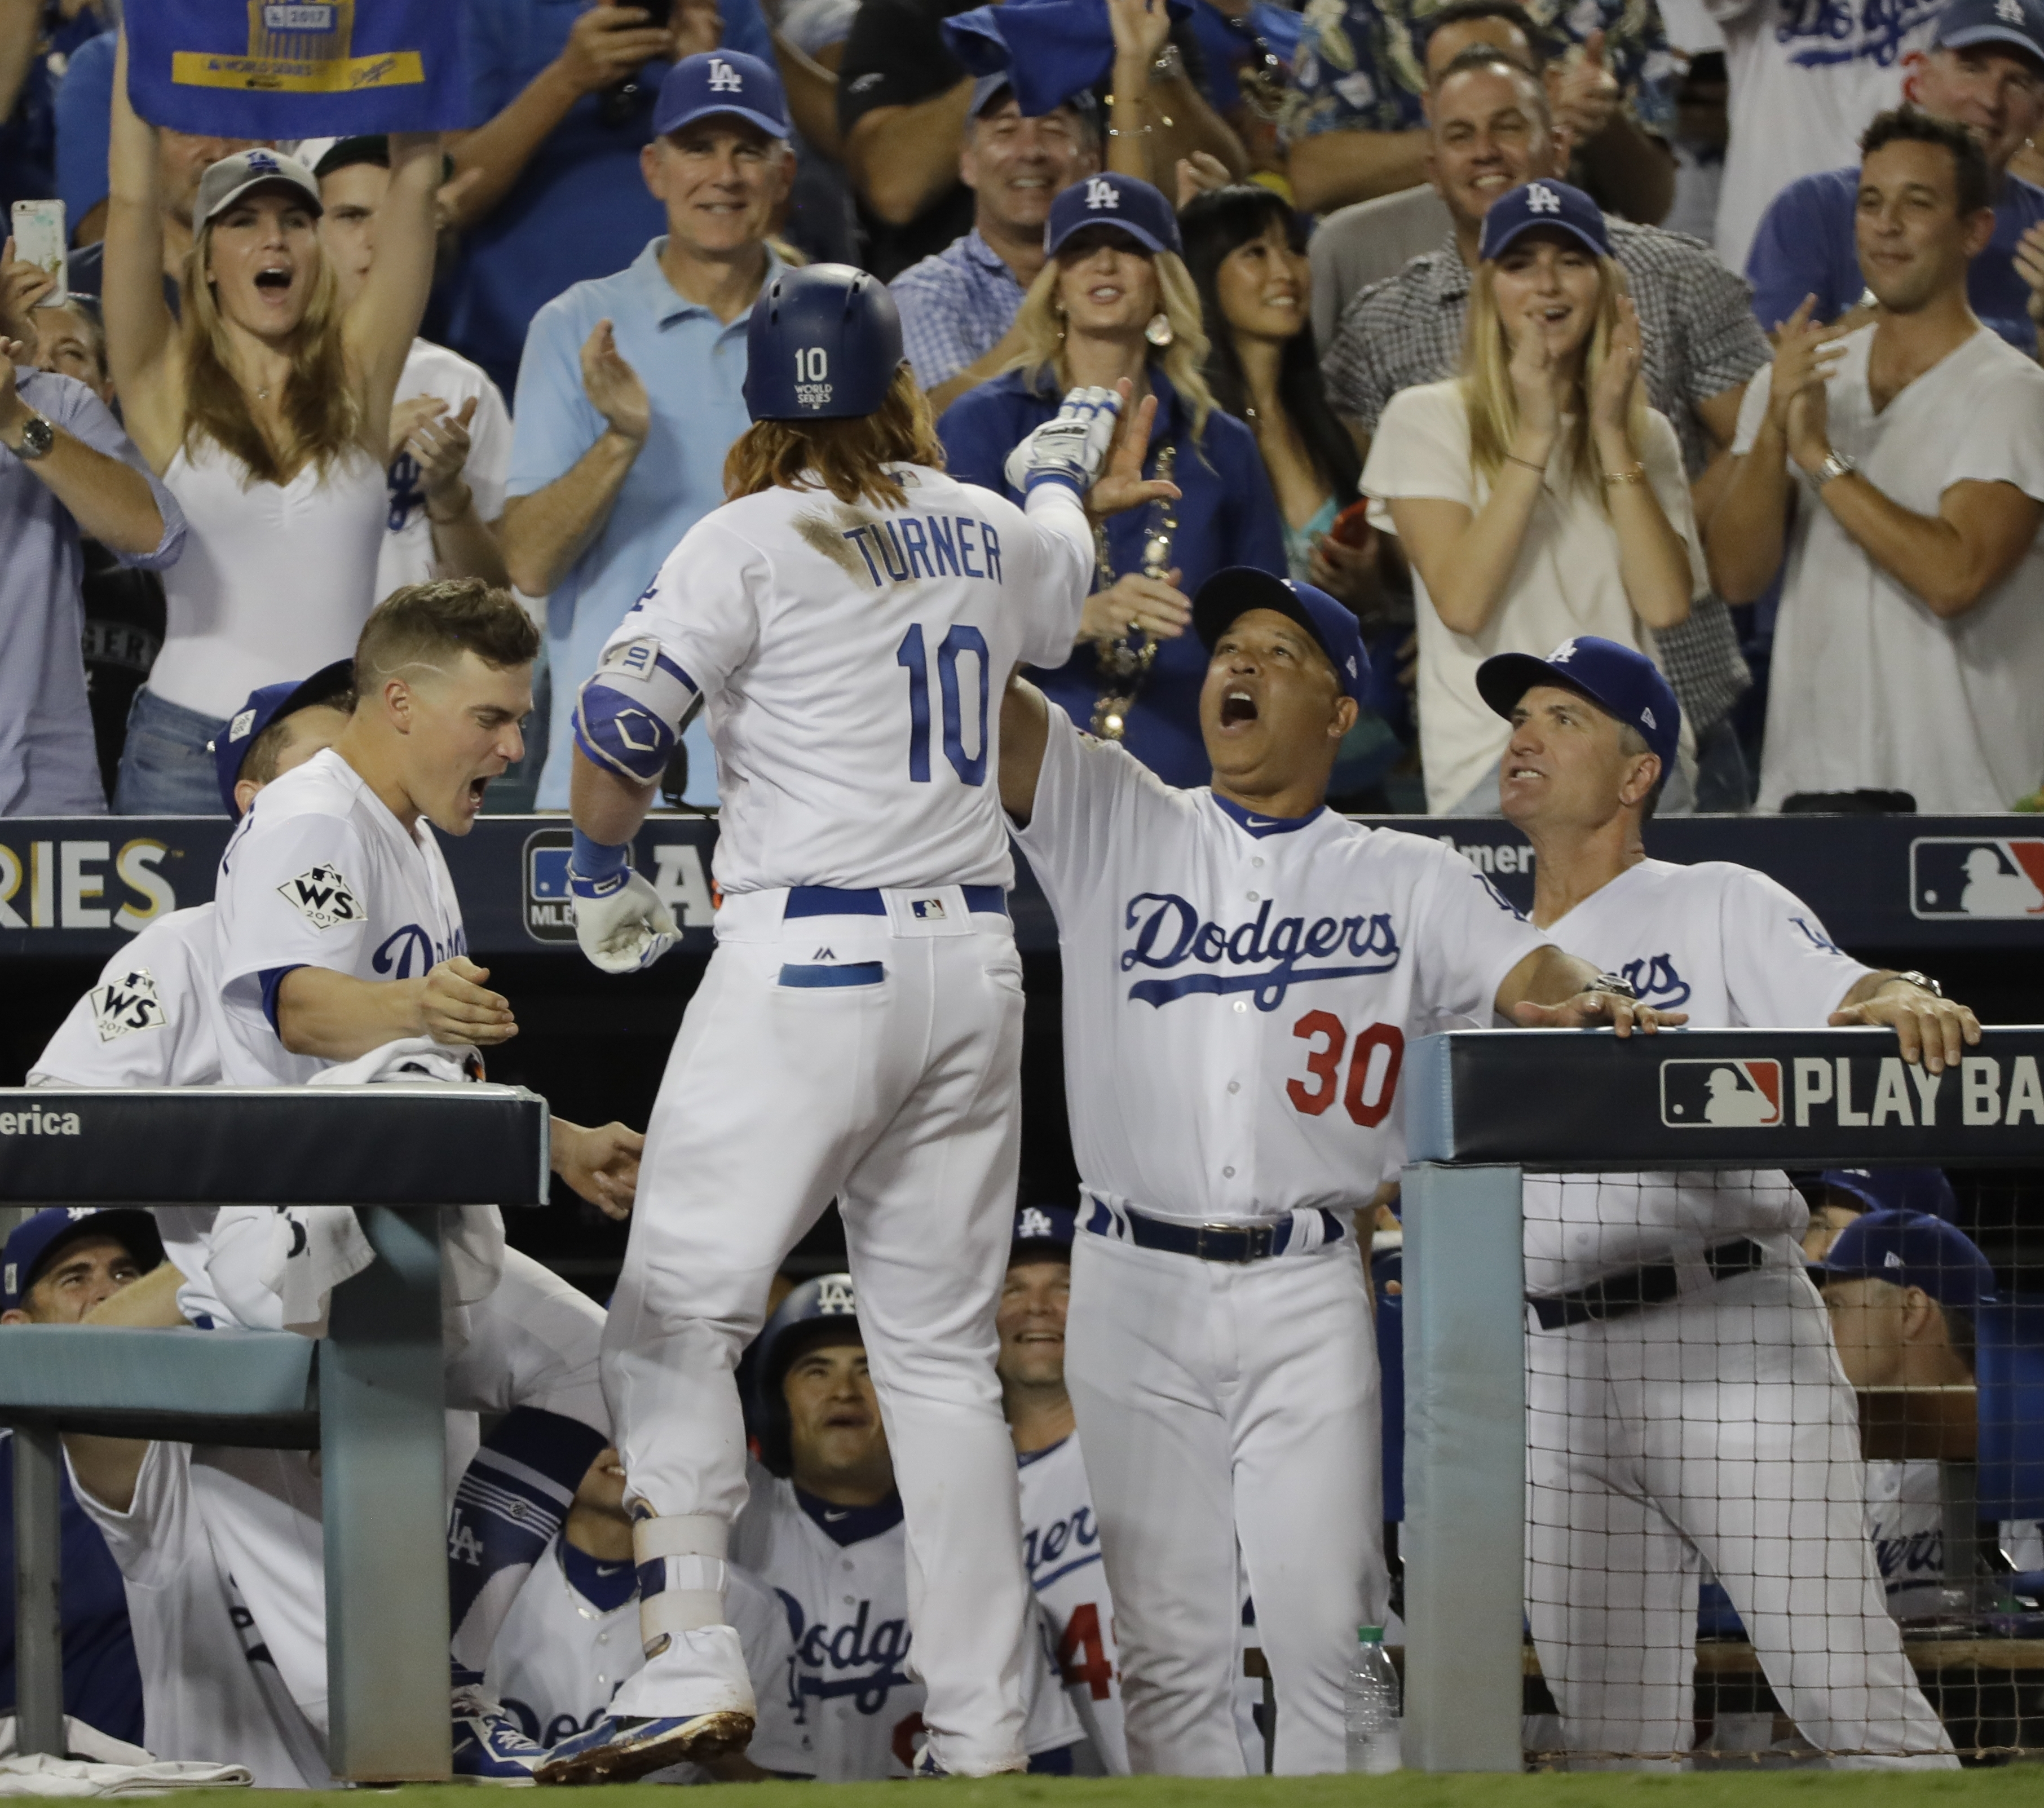 Los Angeles Dodgers' Justin Turner celebrates his two-run home run during the sixth inning of Game 1 of baseball's World Series against the Houston Astros Tuesday, Oct. 24, 2017, in Los Angeles. (AP Photo/David J. Phillip)